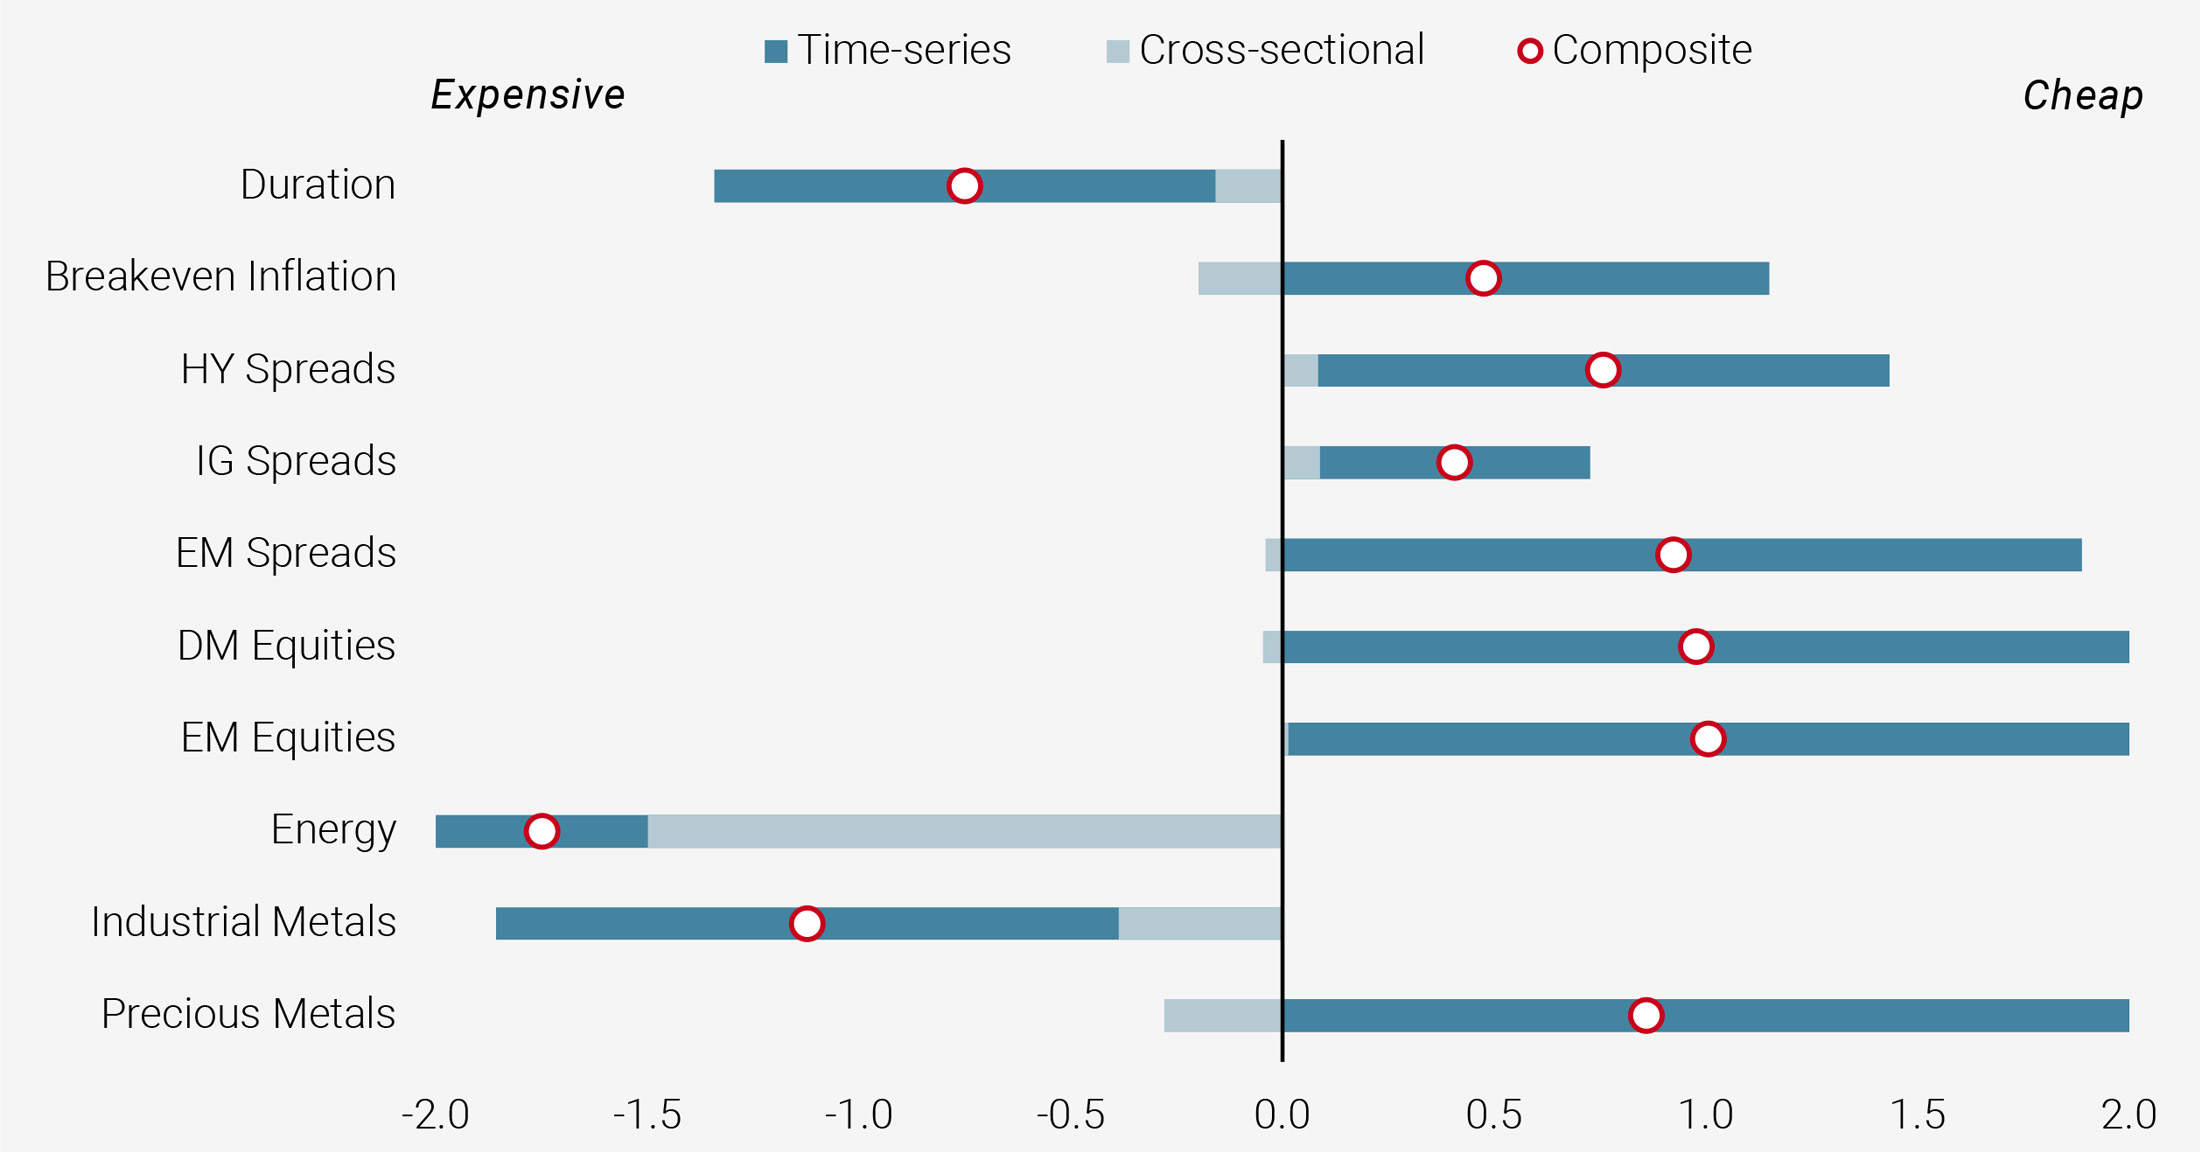 Figure 9: Risk Premia Valuation Scores (from -2 to +2)